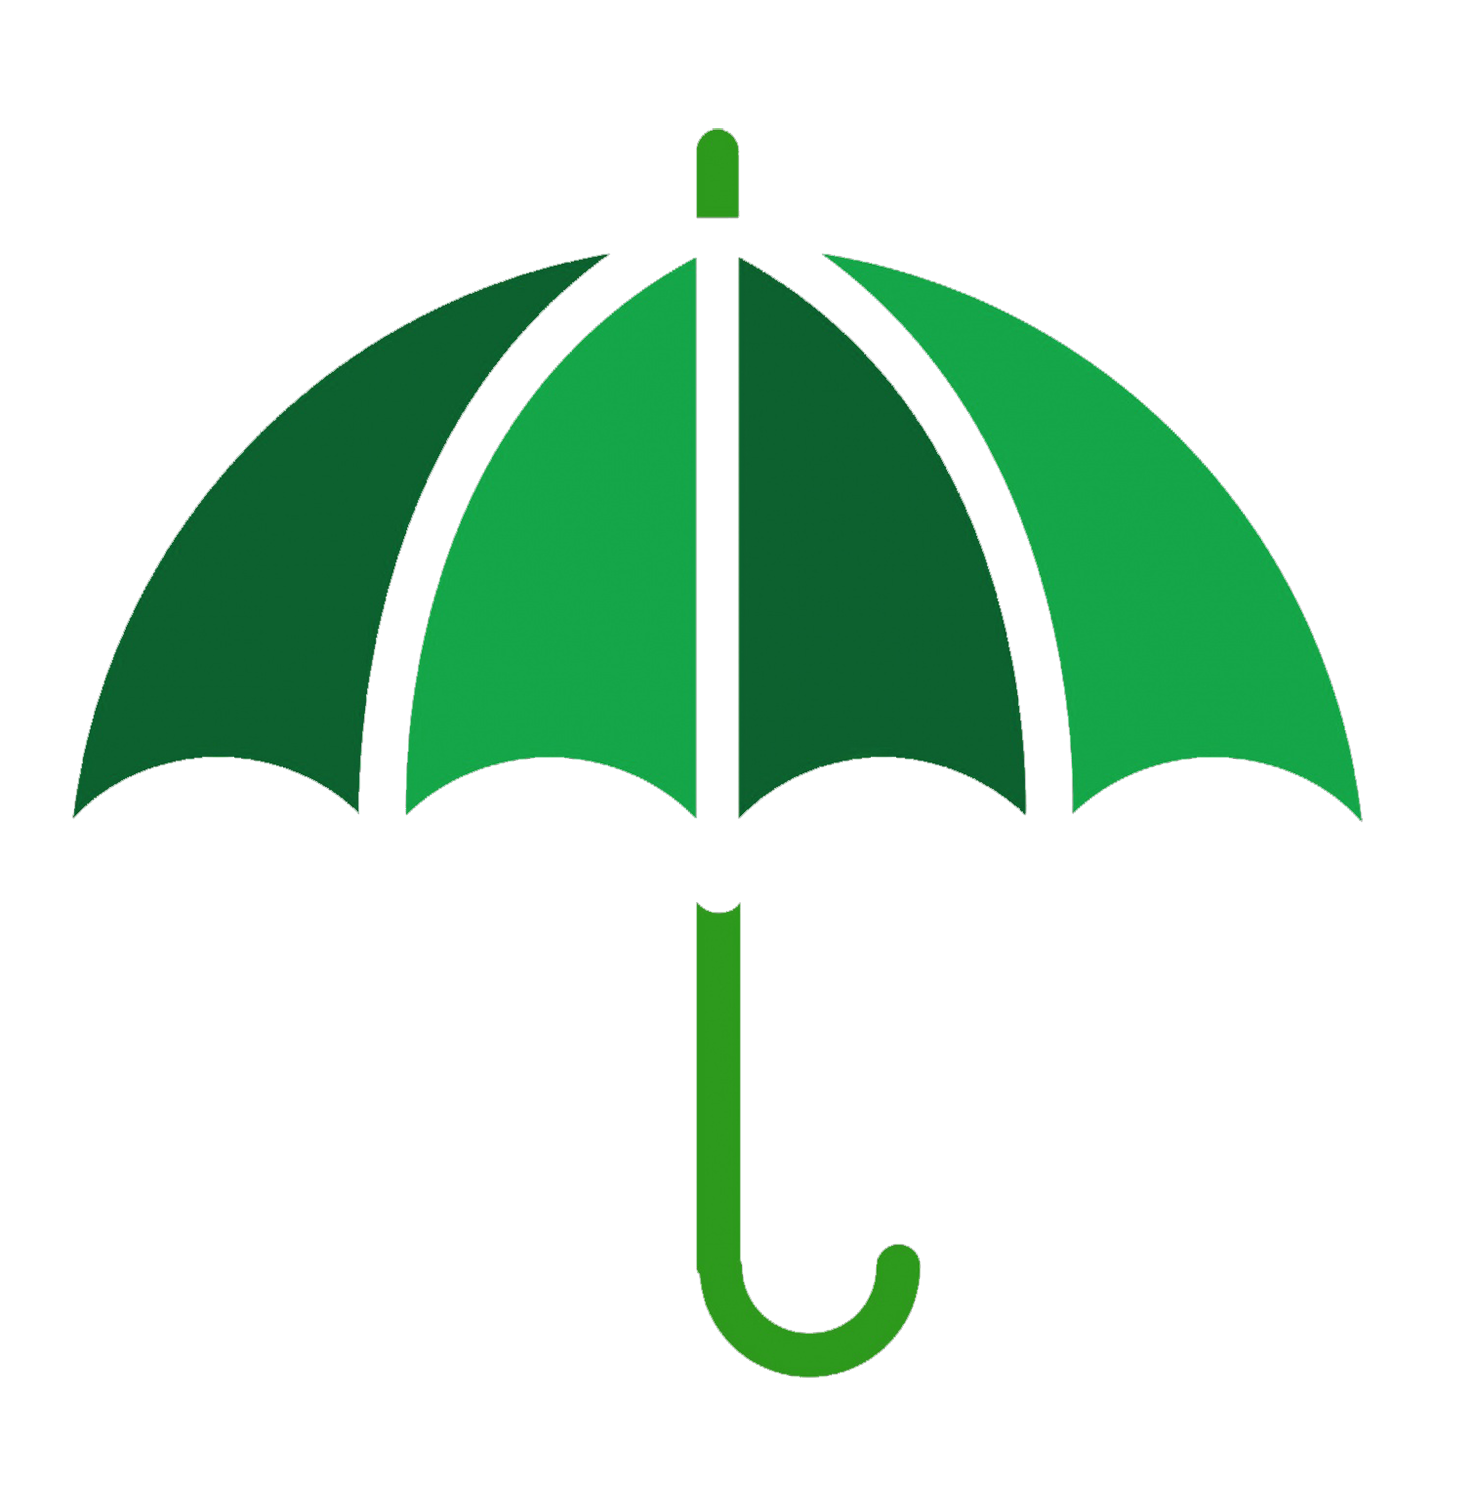 green umbrella symbol